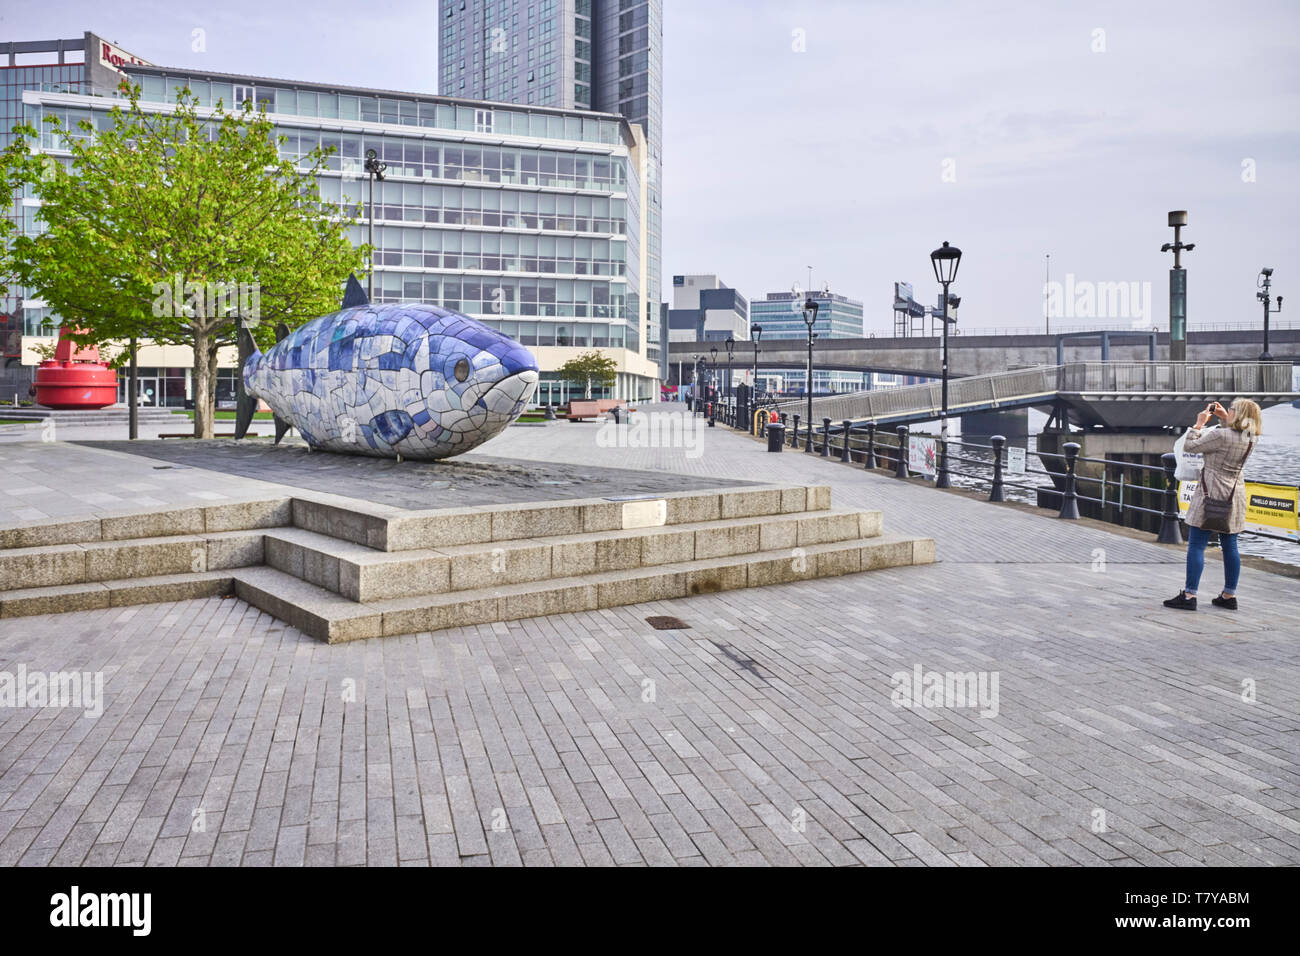 The Salmon of Knowledge sculpture by John Kindness in Donegall Quay, Belfast, Northern Ireland - Stock Image